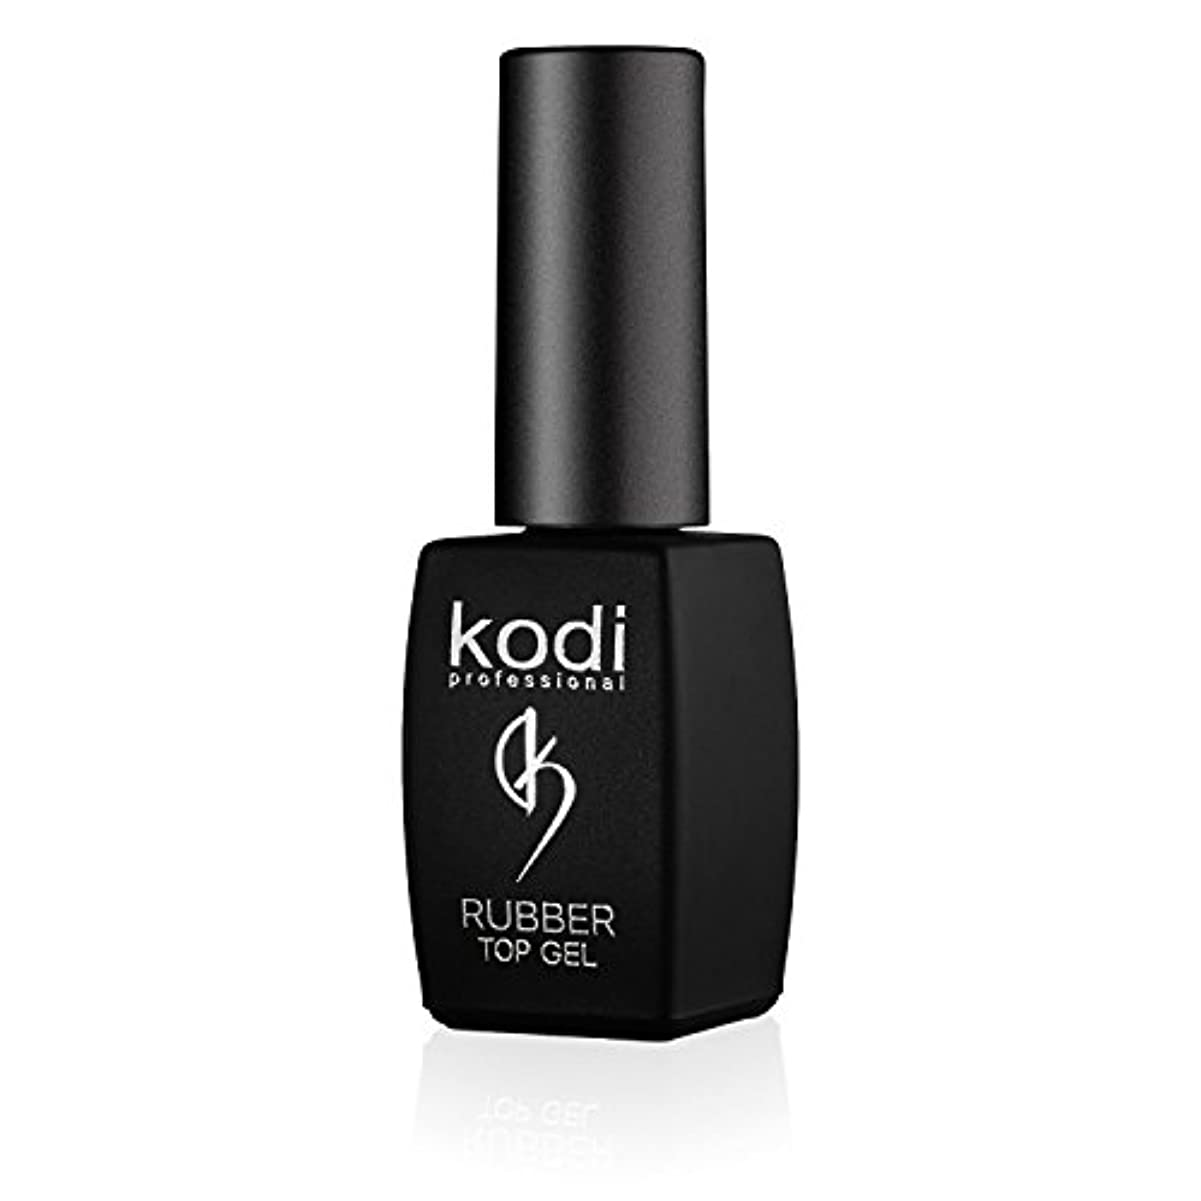 ピアノを弾く最愛のスパイProfessional Rubber Top Gel By Kodi | 8ml 0.27 oz | Soak Off, Polish Fingernails Coat Kit | For Long Lasting Nails...